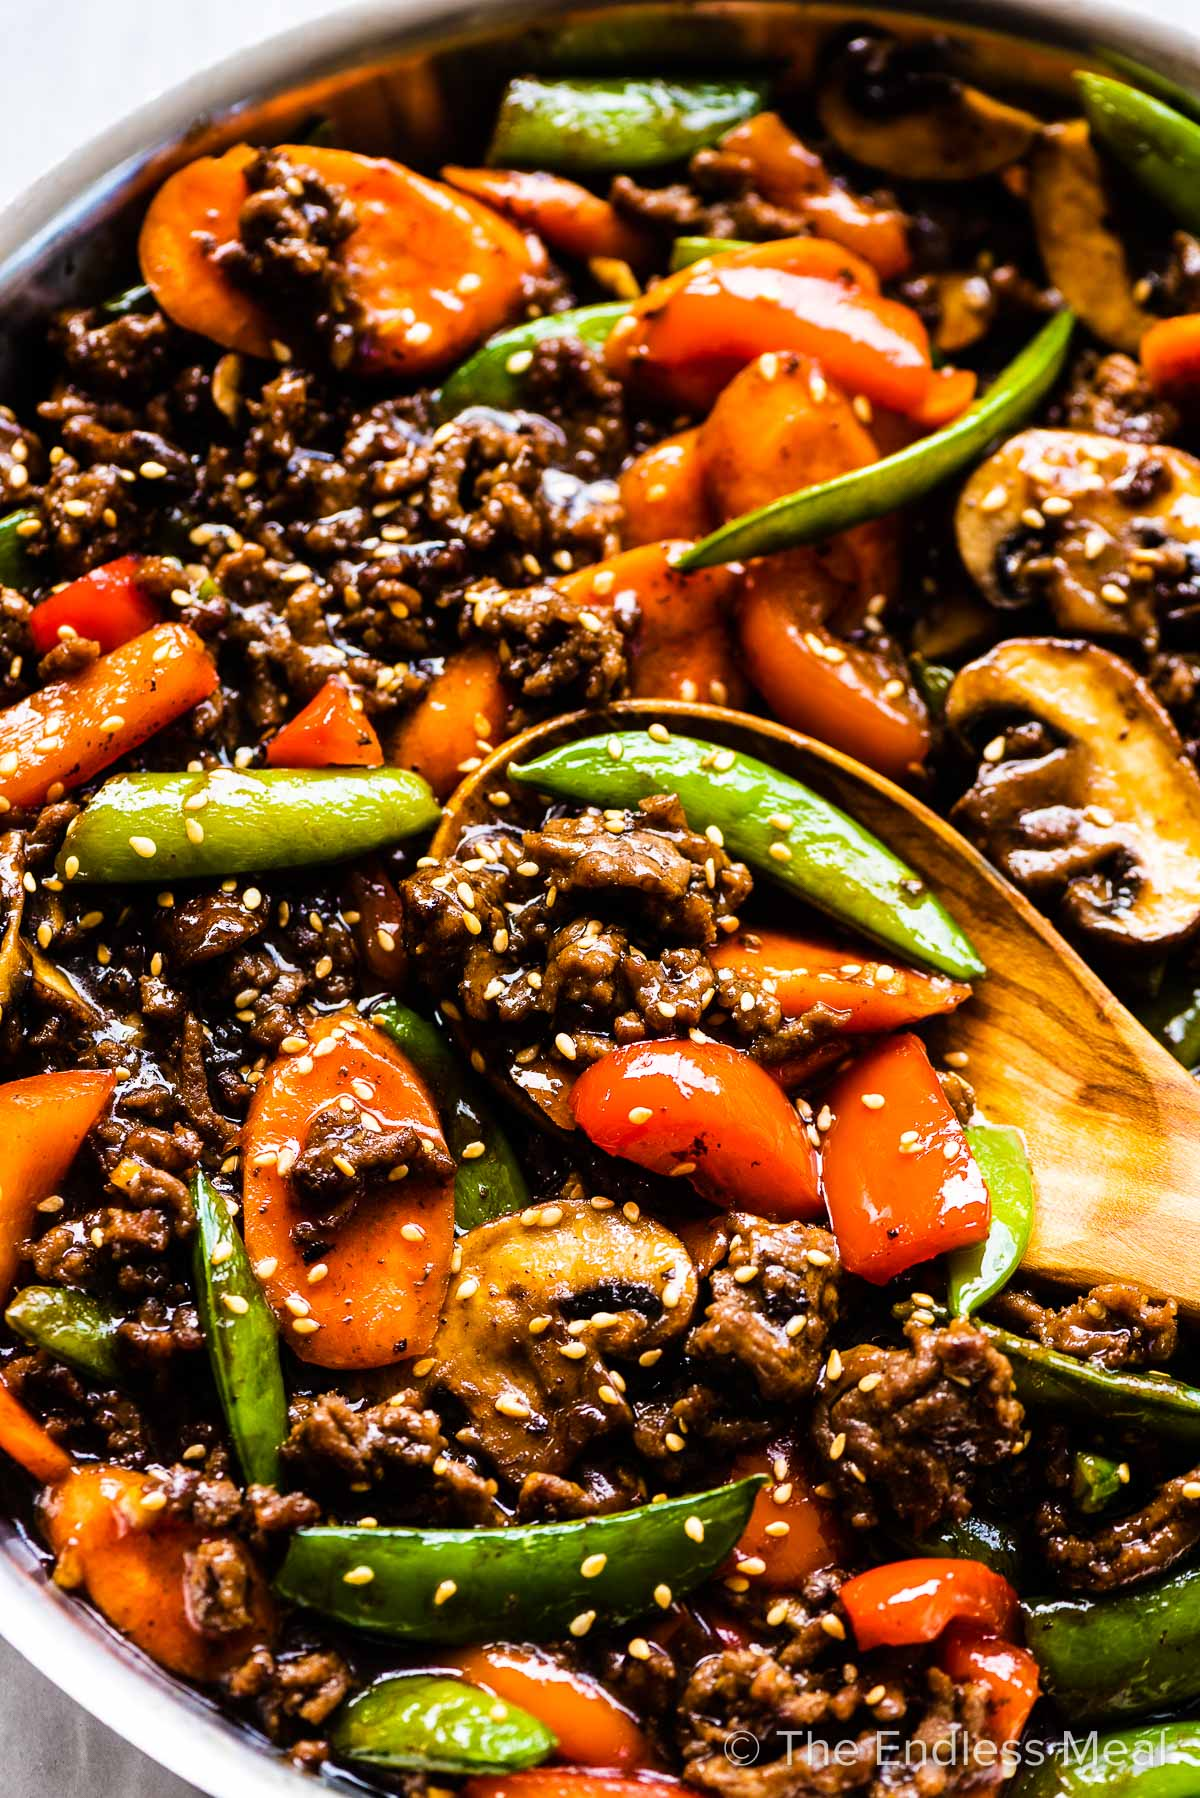 A close up of ground beef stir fry in a pan with lots of peppers, peas, carrots, and mushrooms.